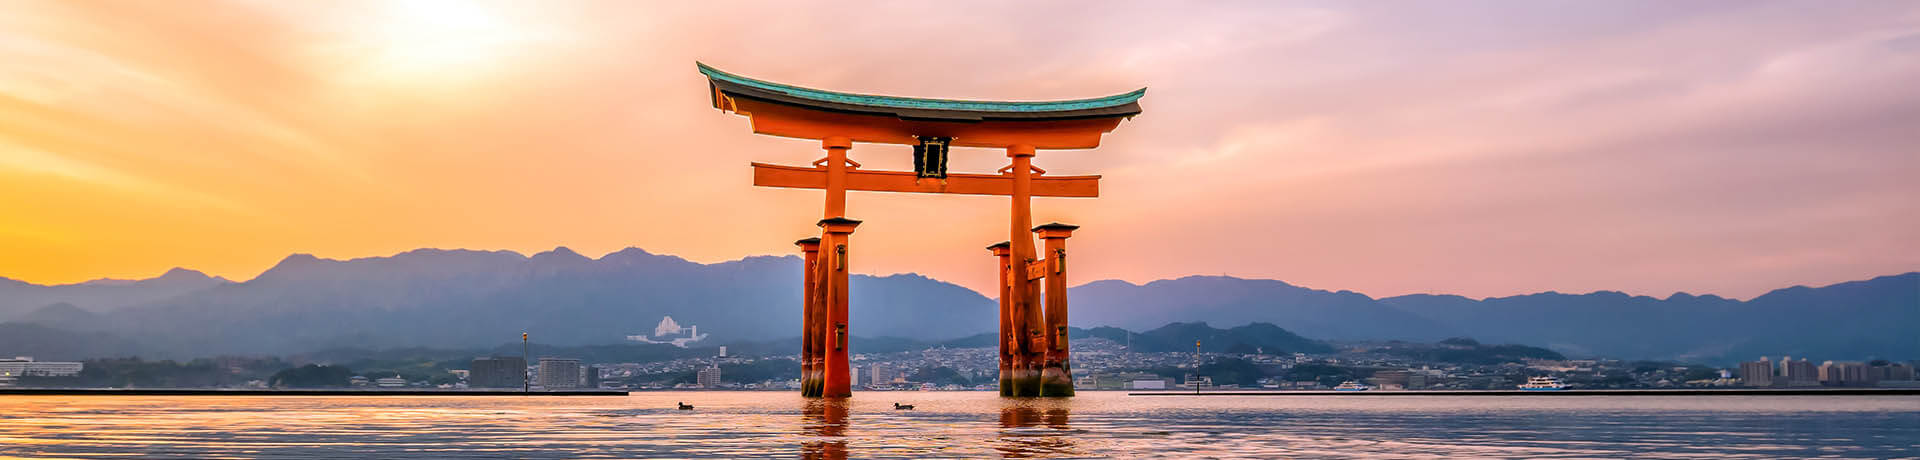 Miyajima, The famous Floating Torii gate in Japan